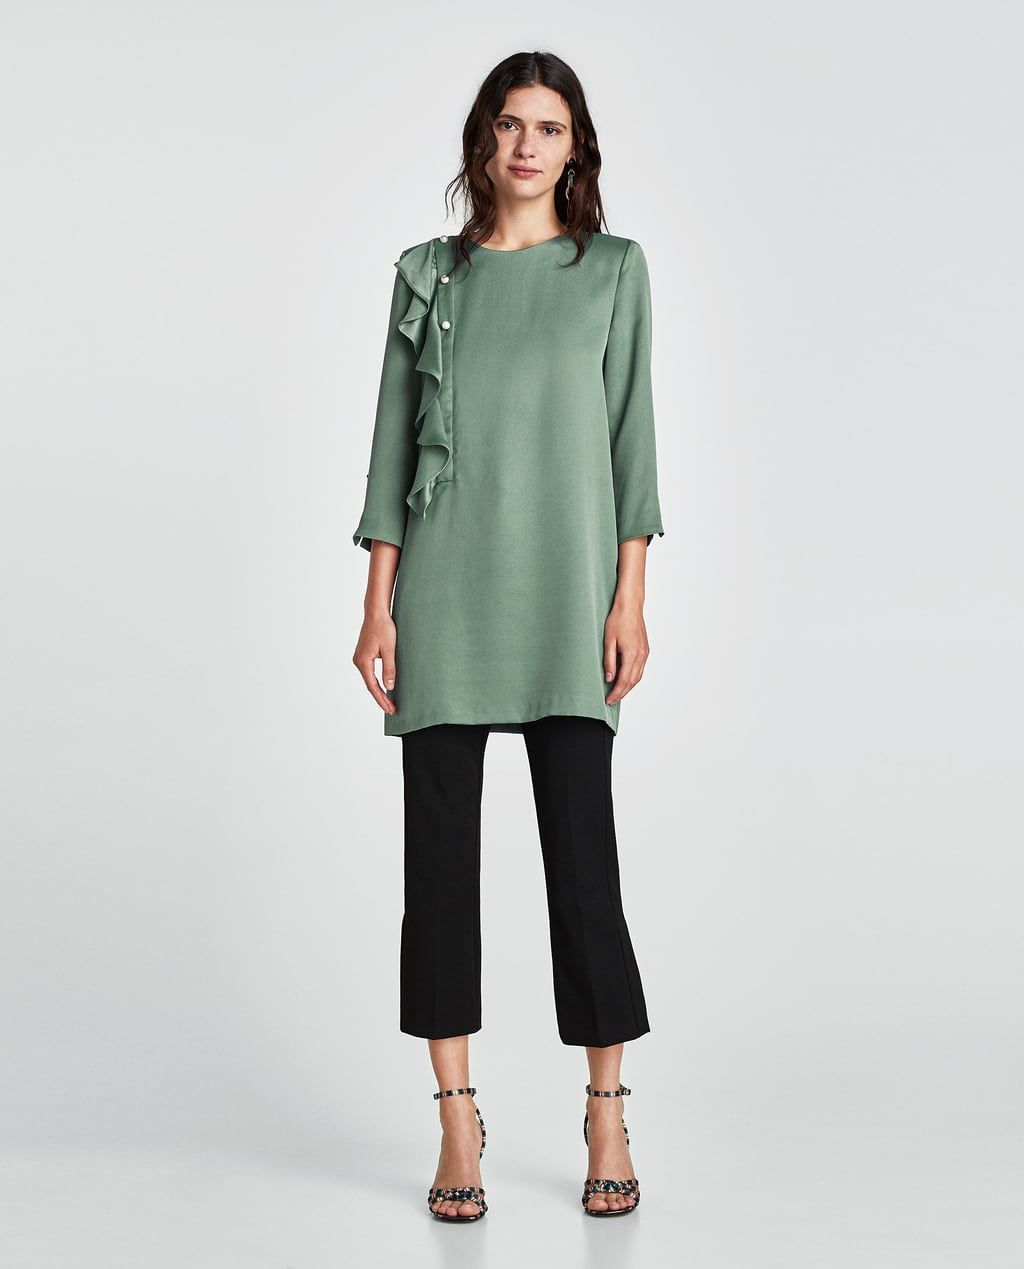 77550b94211 20 Styling Tips We re Stealing From Zara s New Arrivals  refinery29